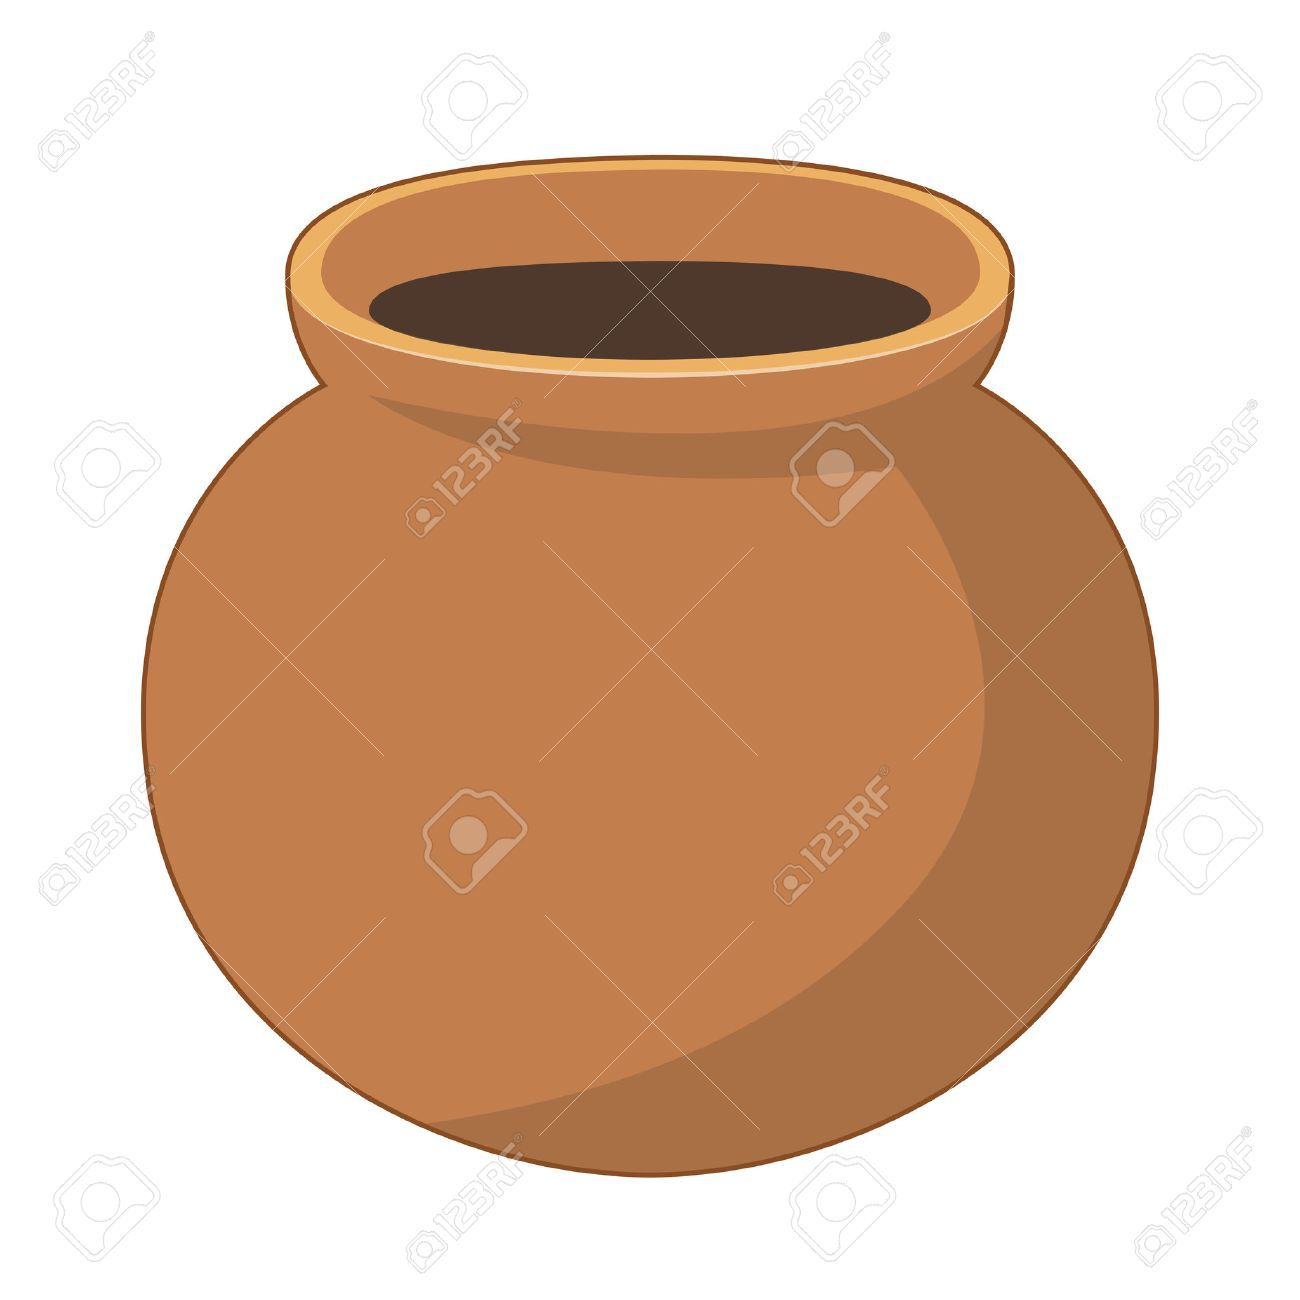 Clay pot clipart 5 » Clipart Portal.